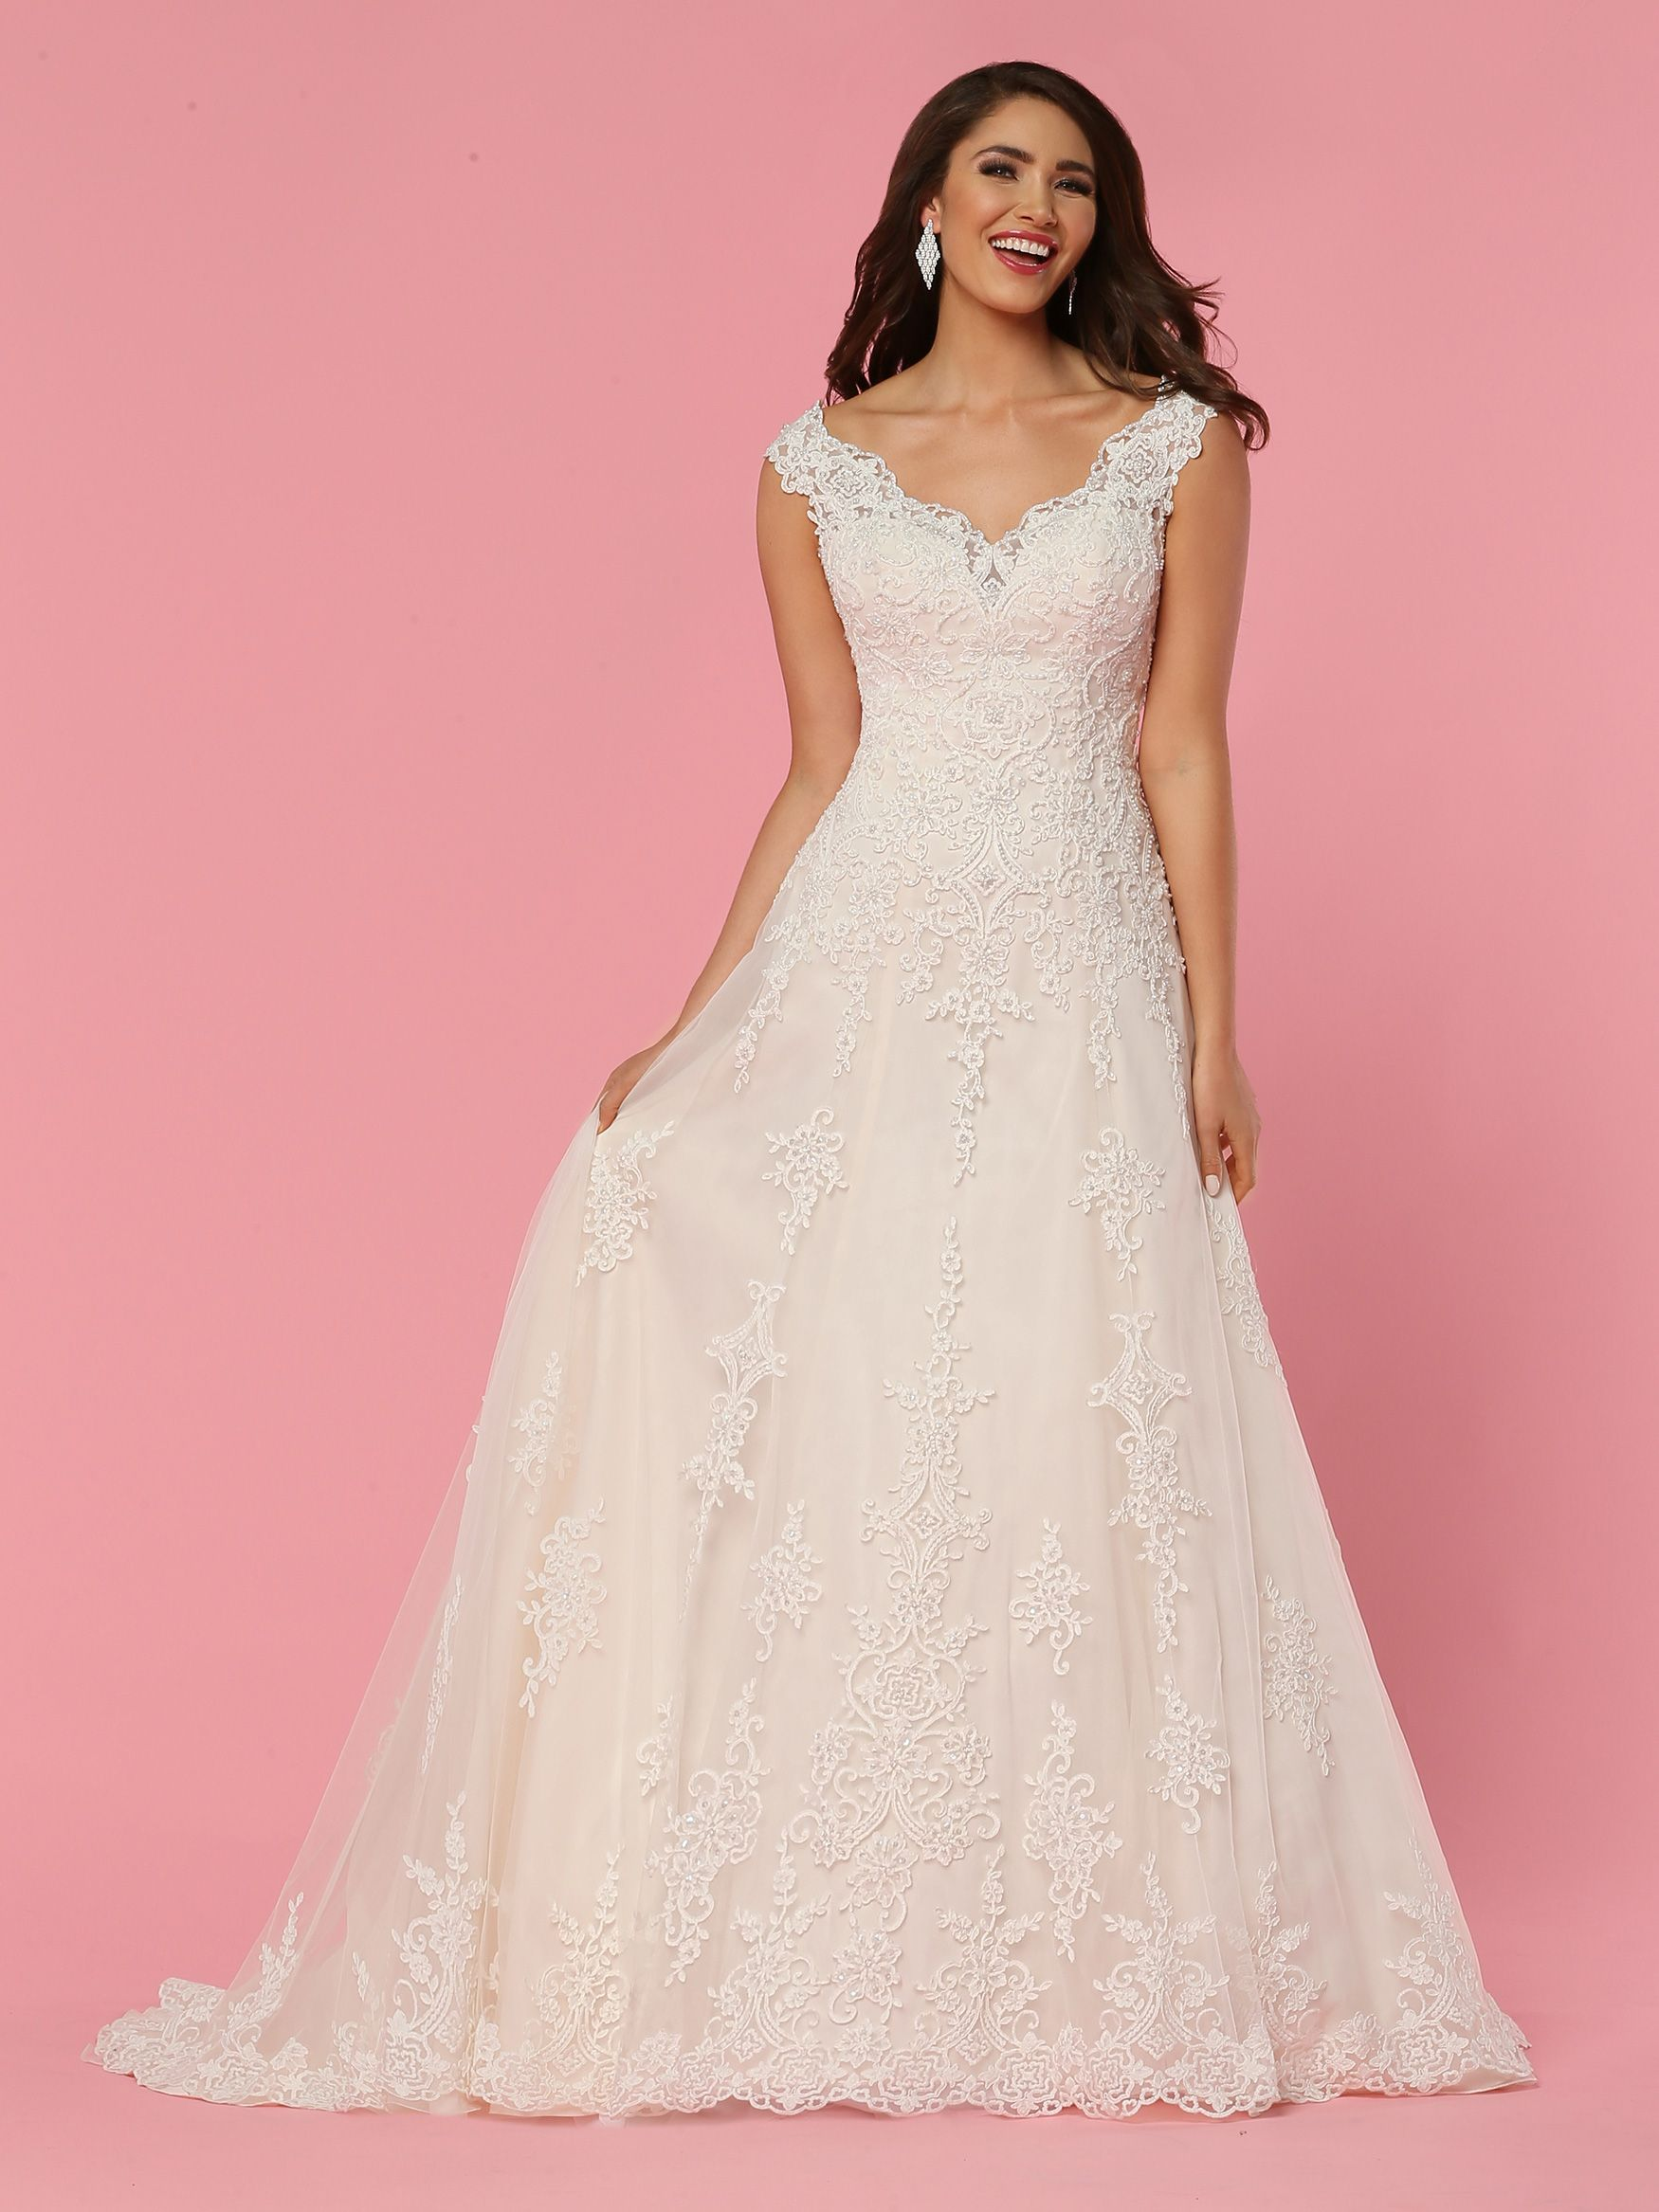 DaVinci Wedding Dresses Style #50444 | The Bridal Boutique Ltd ...